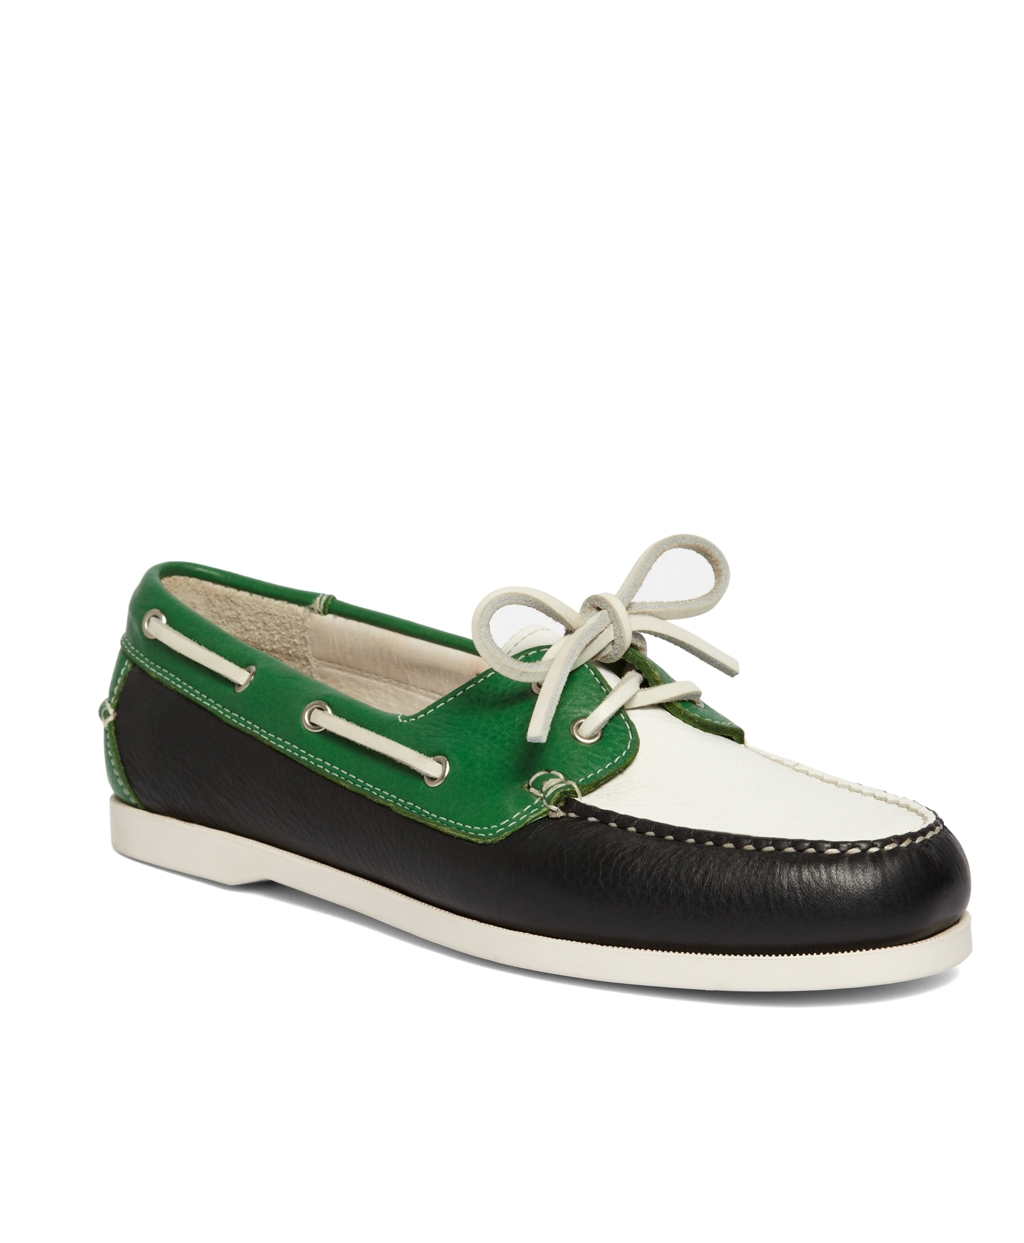 Our pebbled calfskin color blocked boat shoe is crafted in pebbled